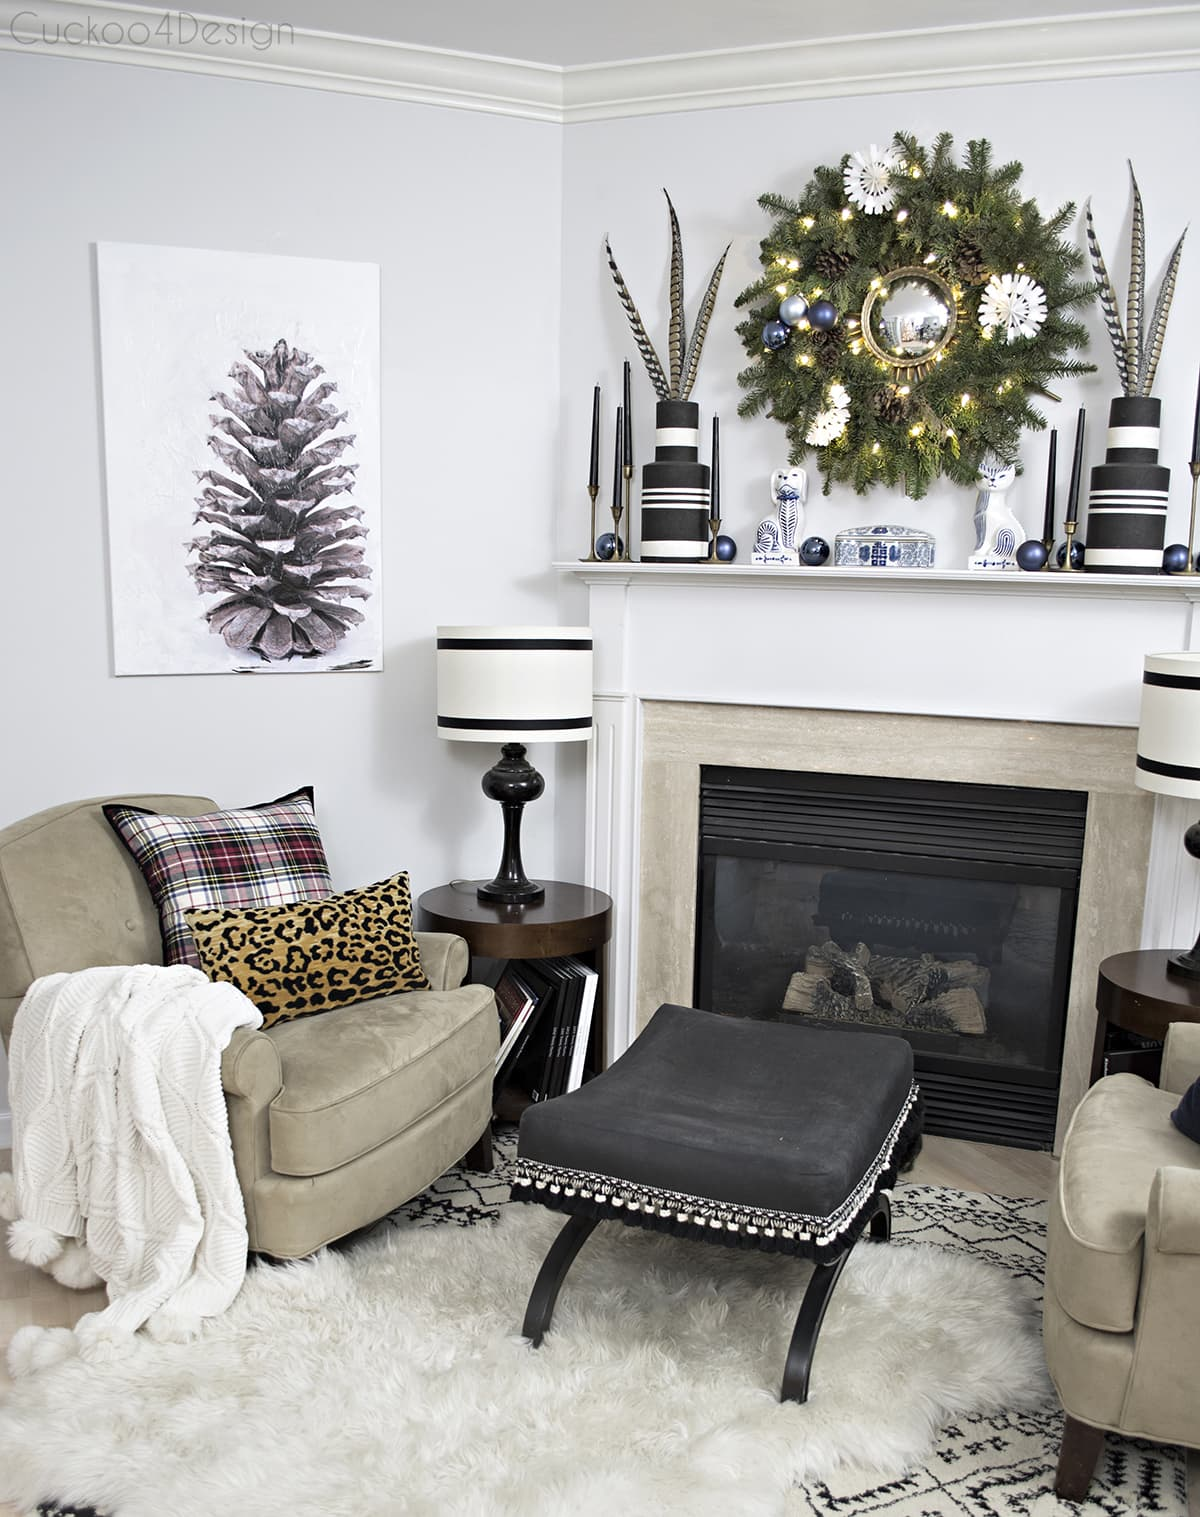 eclectic neutral Christmas fireplace area with DIY pinecone art